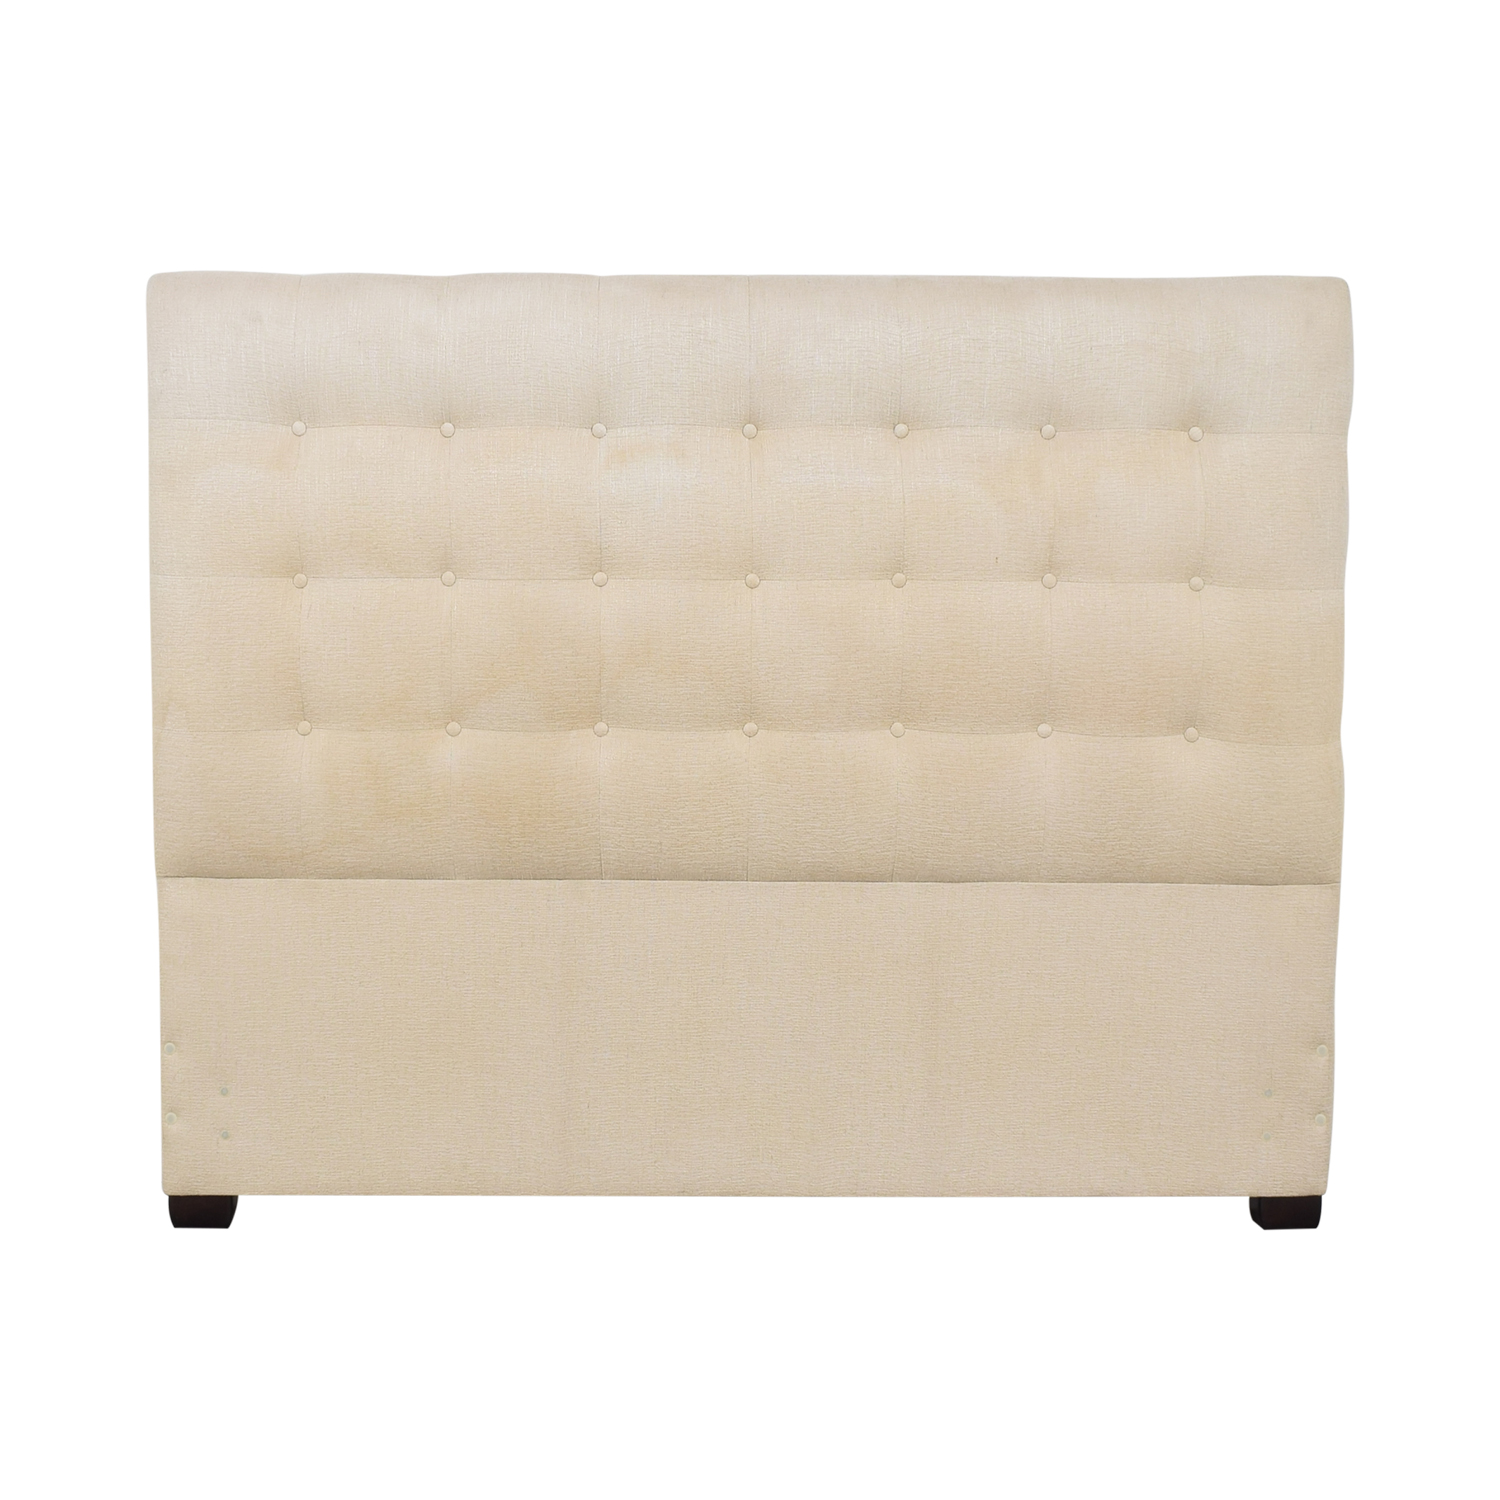 Bernhardt Bernhardt Avery Tufted Queen Headboard Beds